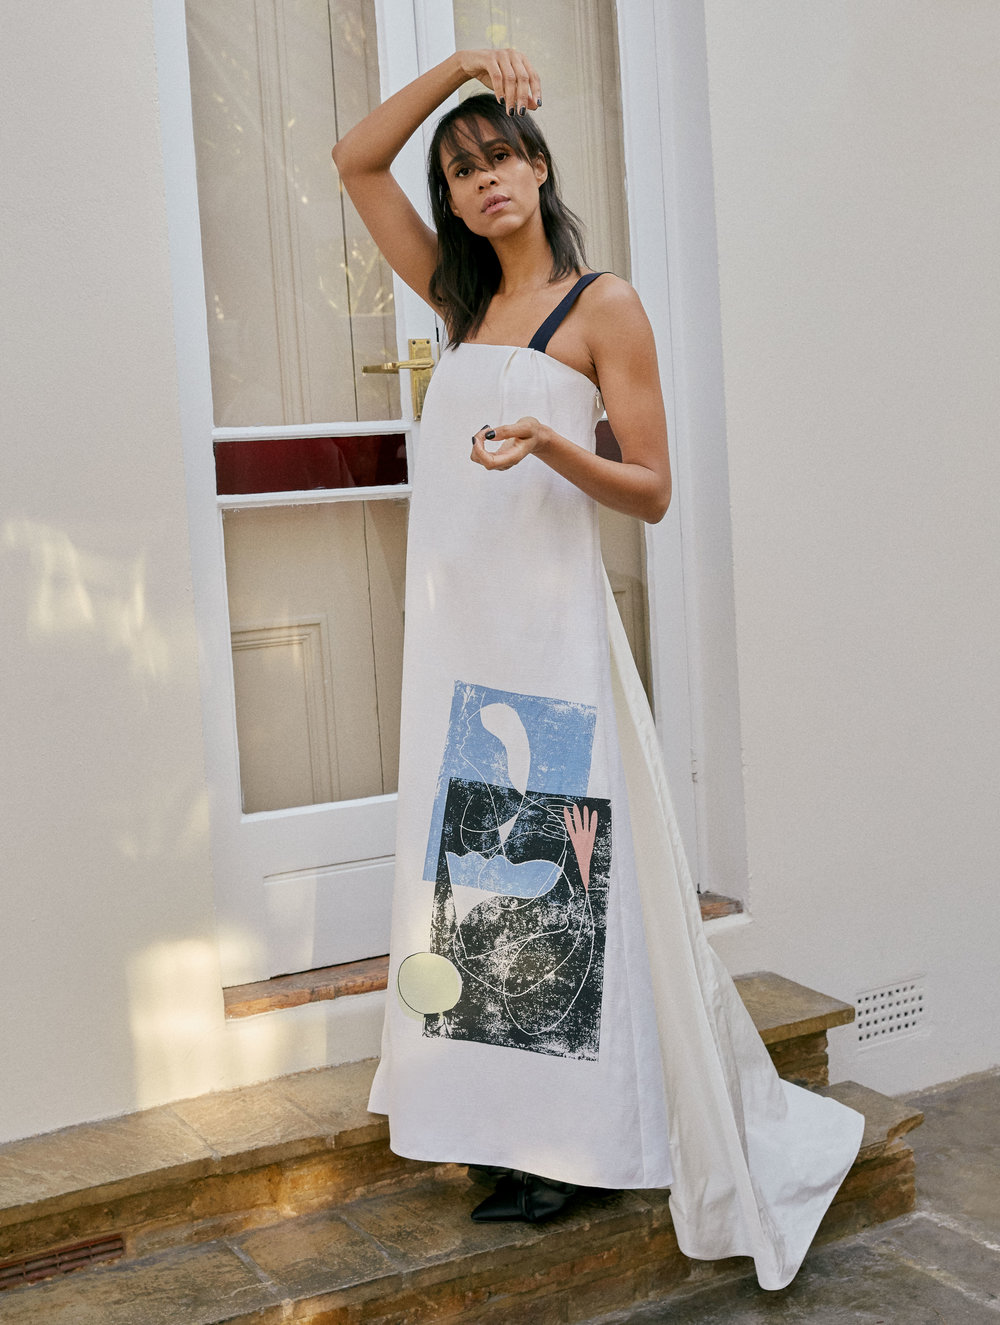 Dress by   ROKSANDA  ; Shoes by   MOTHER OF PEARL